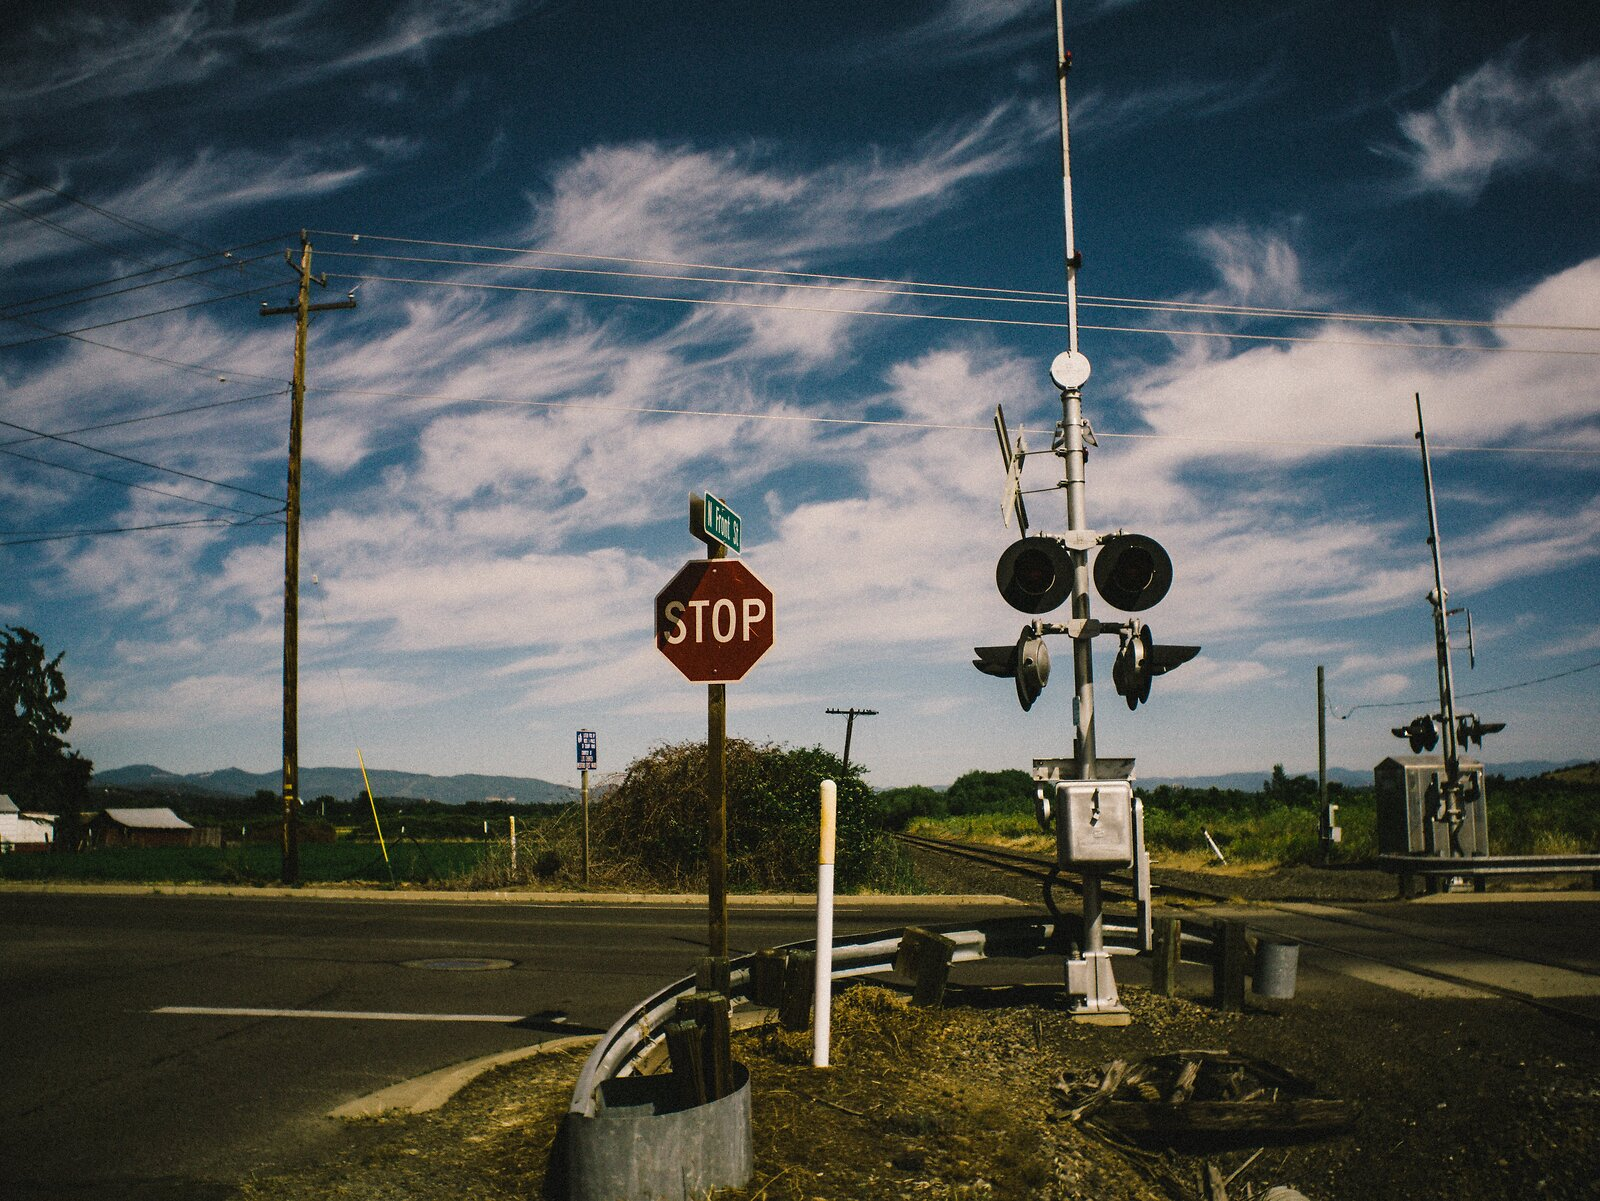 RailRoadSTOP-EKPortraXT1v4.jpg